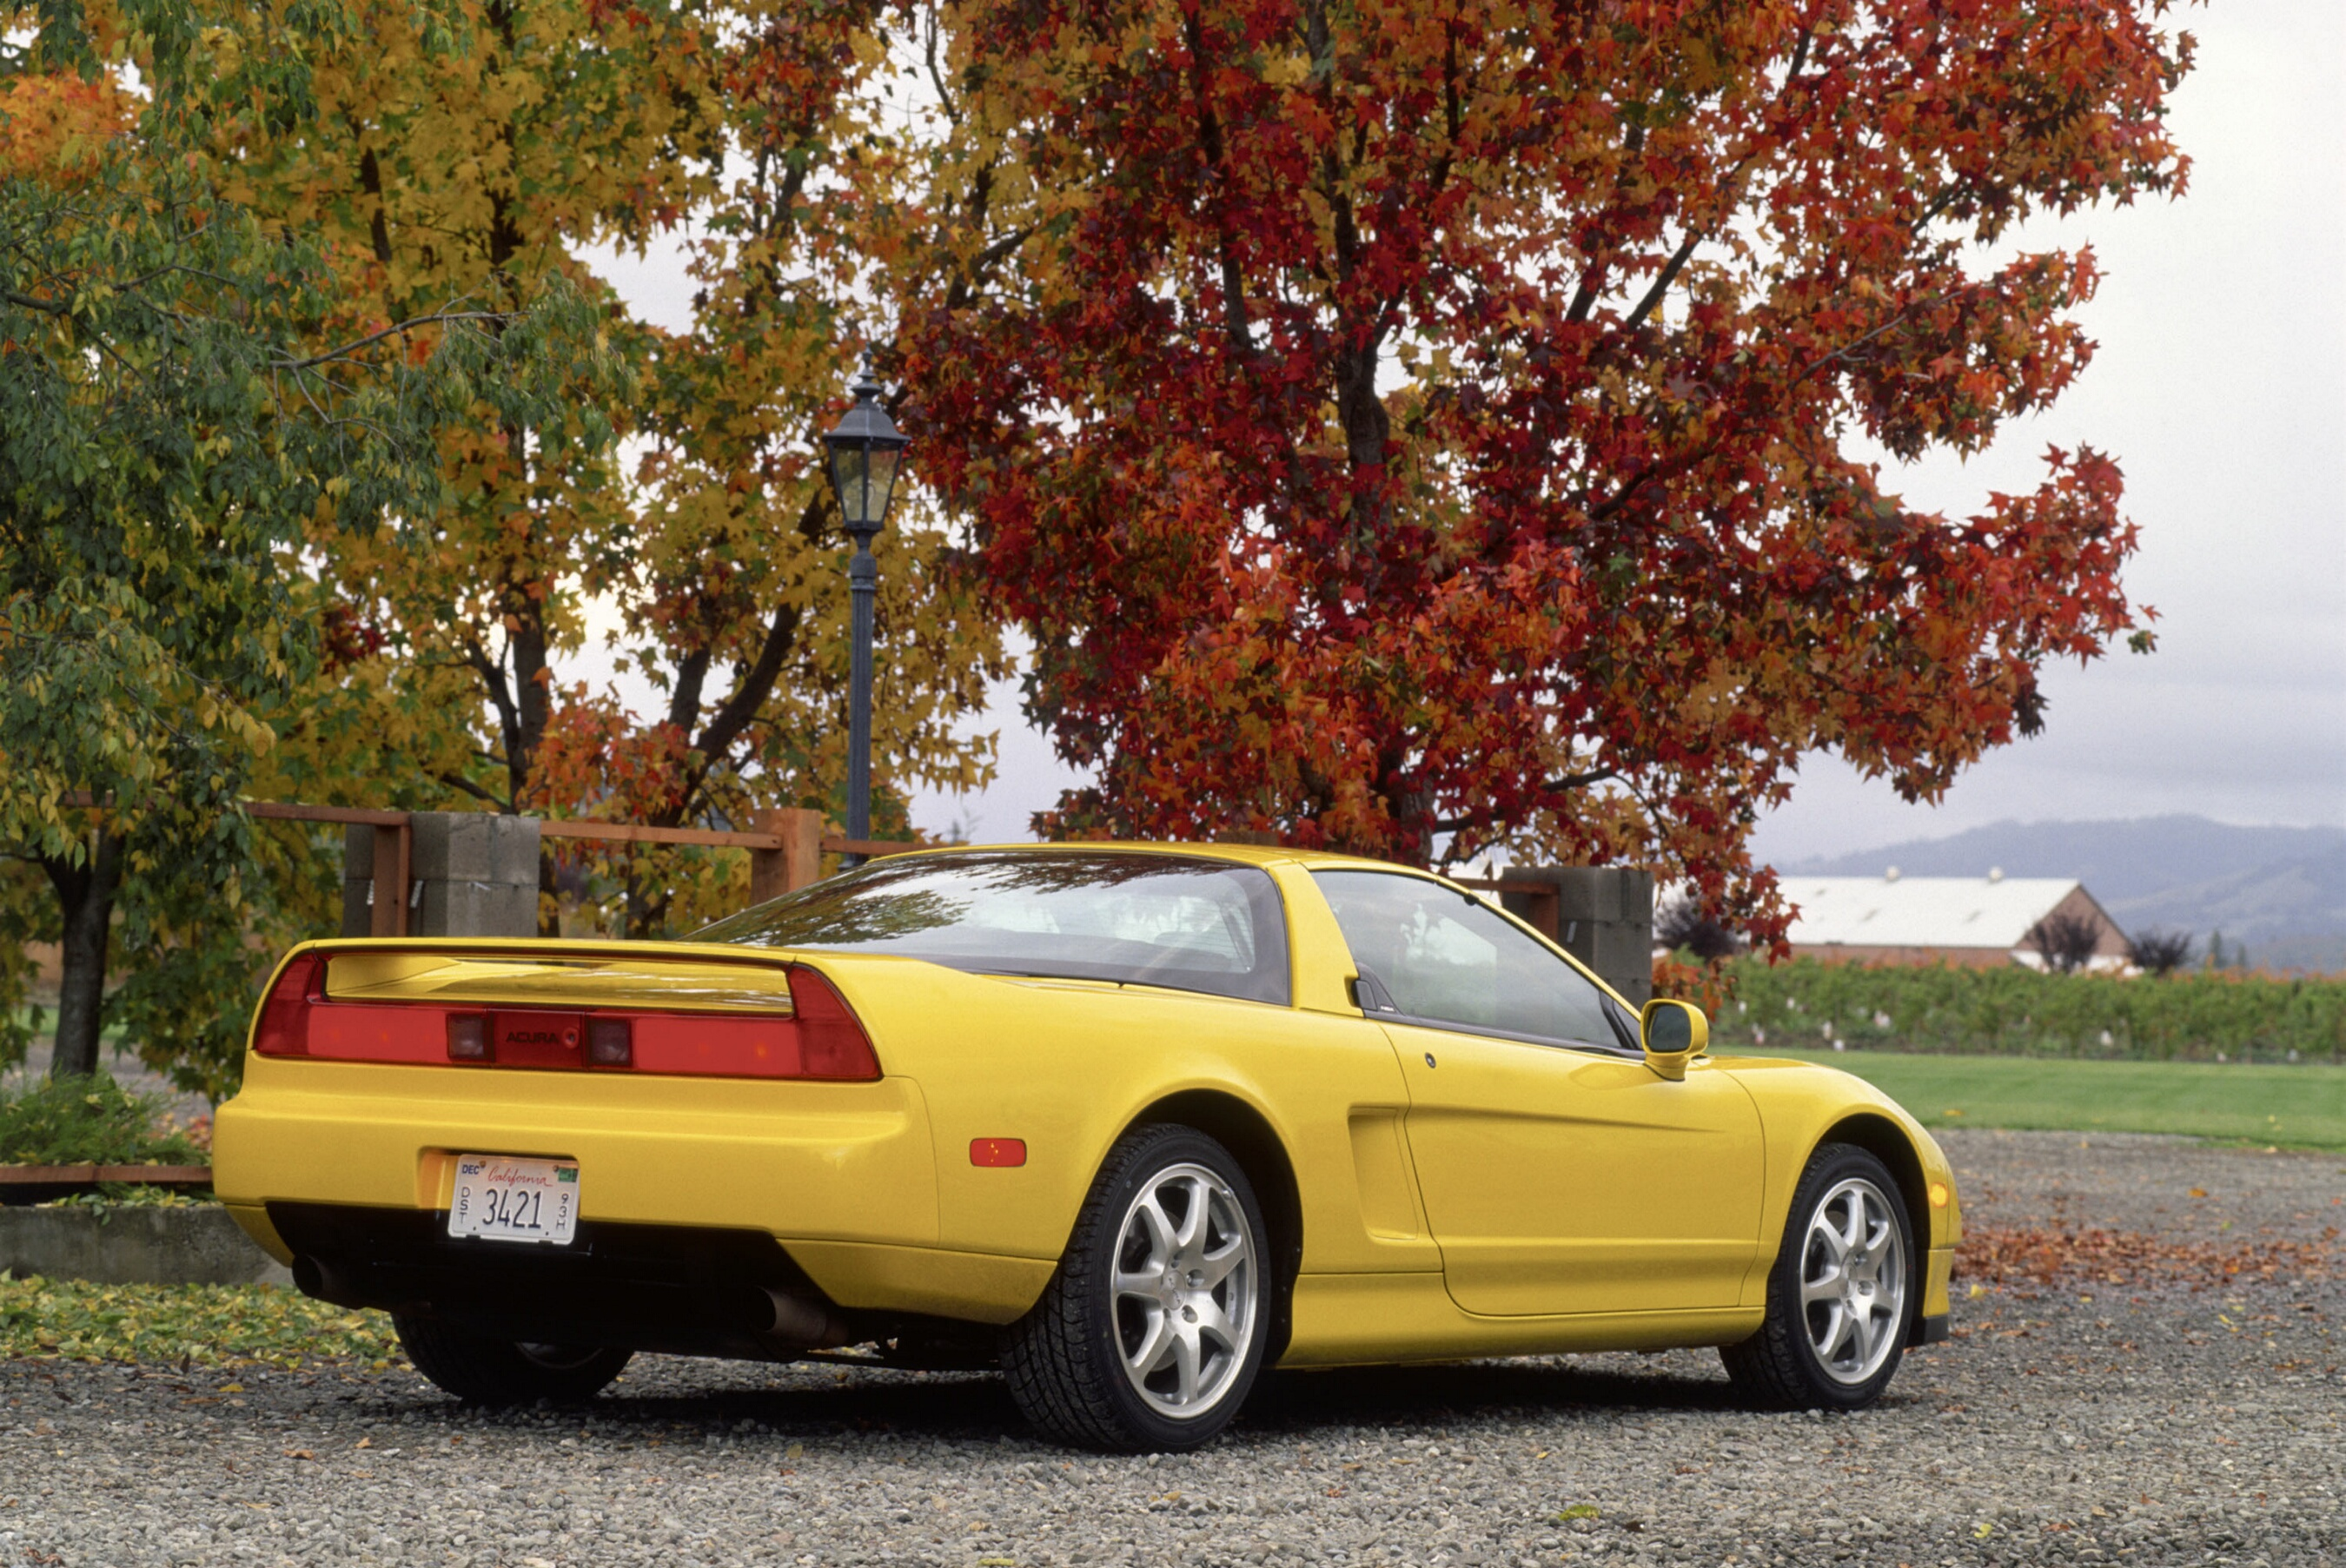 The Acura NSX-T exotic sports car sets the performance and technology standards for all Acura models. Offered in two distinct engine-transmissions, an all-aluminum, 3.2-liter, 24-valve, DOHC V6 engine that generates 290 horsepower with a 6-speed, close ratio transmission and an optional 4-speed sequential SportShift automatic transmission coupled to an all-aluminum, 3.0-liter, 24-valve, DOHC V6 creating 252 horsepower. The NSX is a thoroughbred car for true enthusiasts.